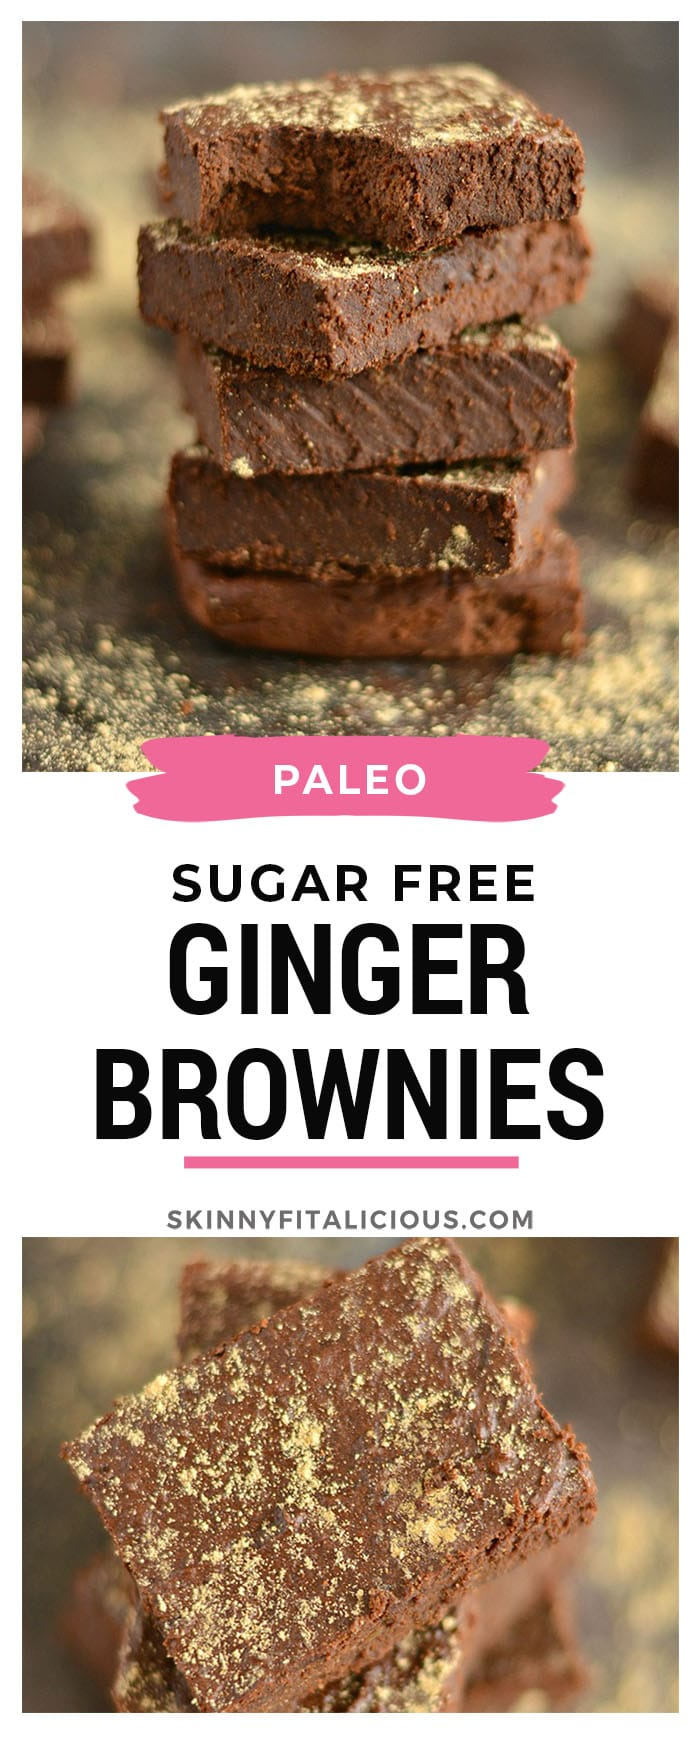 These Sugar Free Ginger CacaoBrownies are a chocolate lover's dream! Naturally sweetened & made with whole food ingredients, these brownies make the perfect healthy treat.Gluten Free + Low Calorie + Paleo